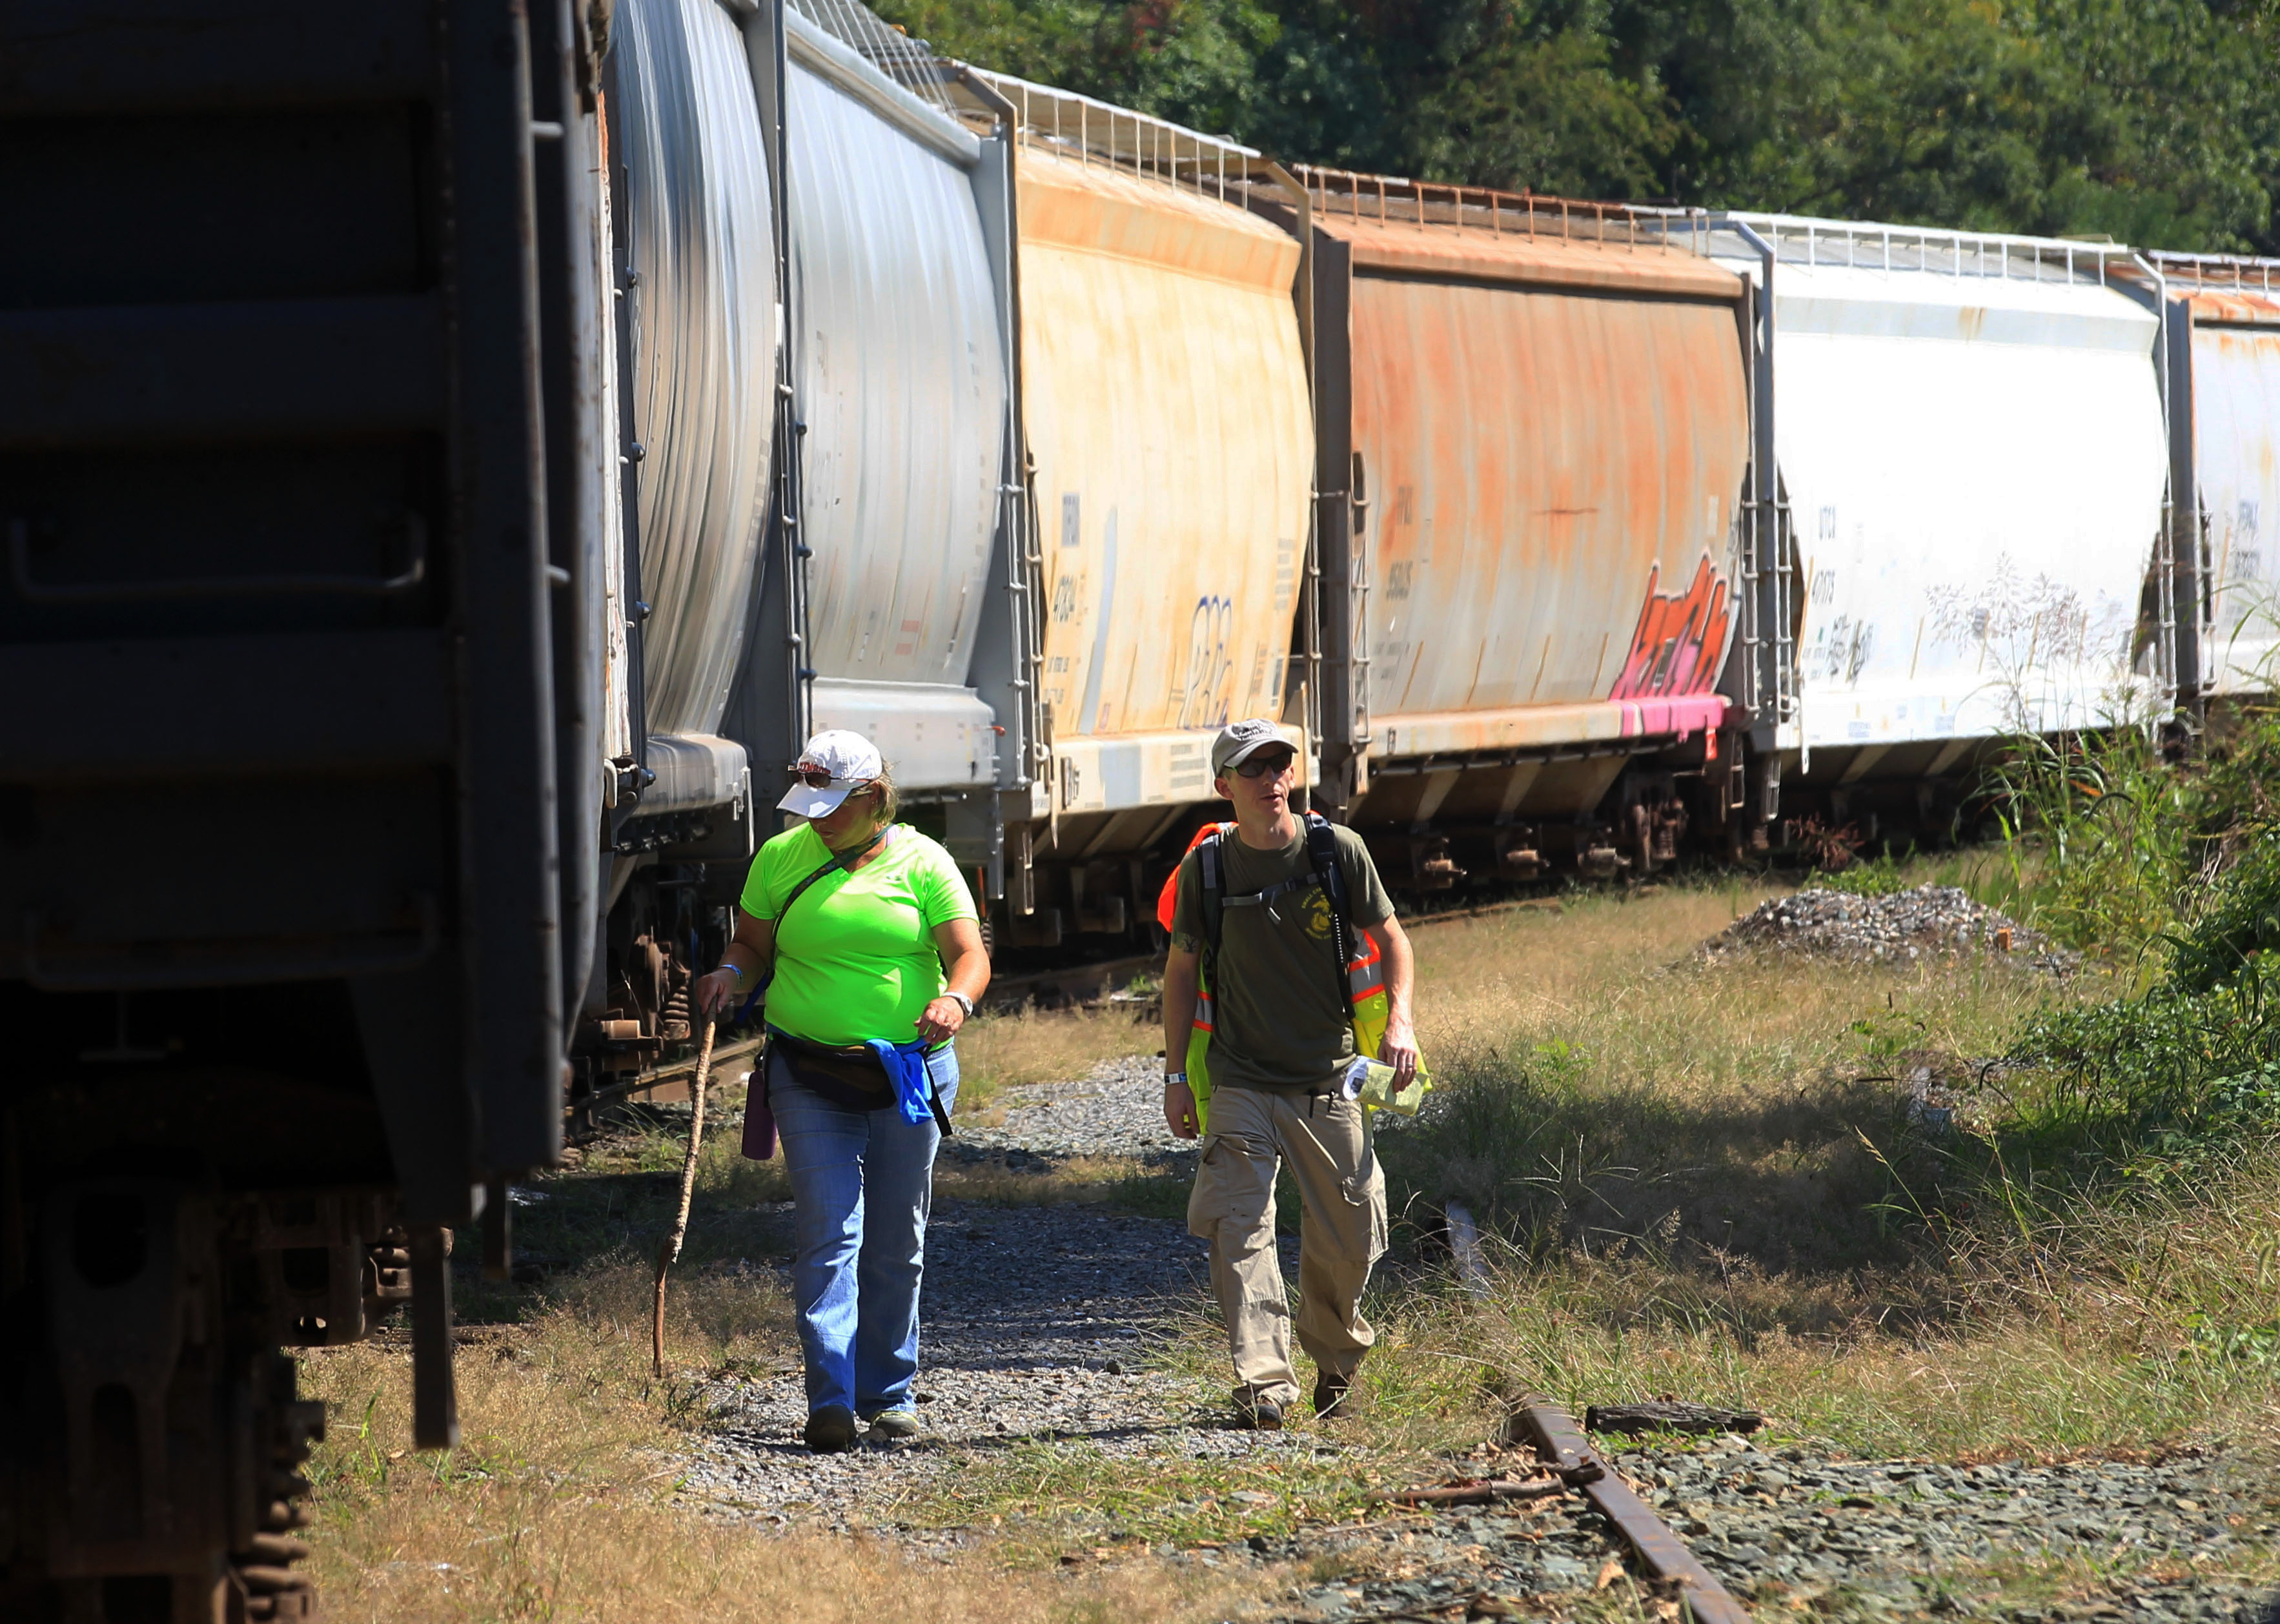 Volunteer Linda Cassell, left, walks with search team leader Brian Pace, as they search along the railroad tracks behind the Charlottesville Downtown Mall during a massive search effort by the community for missing University of Virginia student Hannah Graham, Sept. 20, 2014, in Charlottesville, Va.